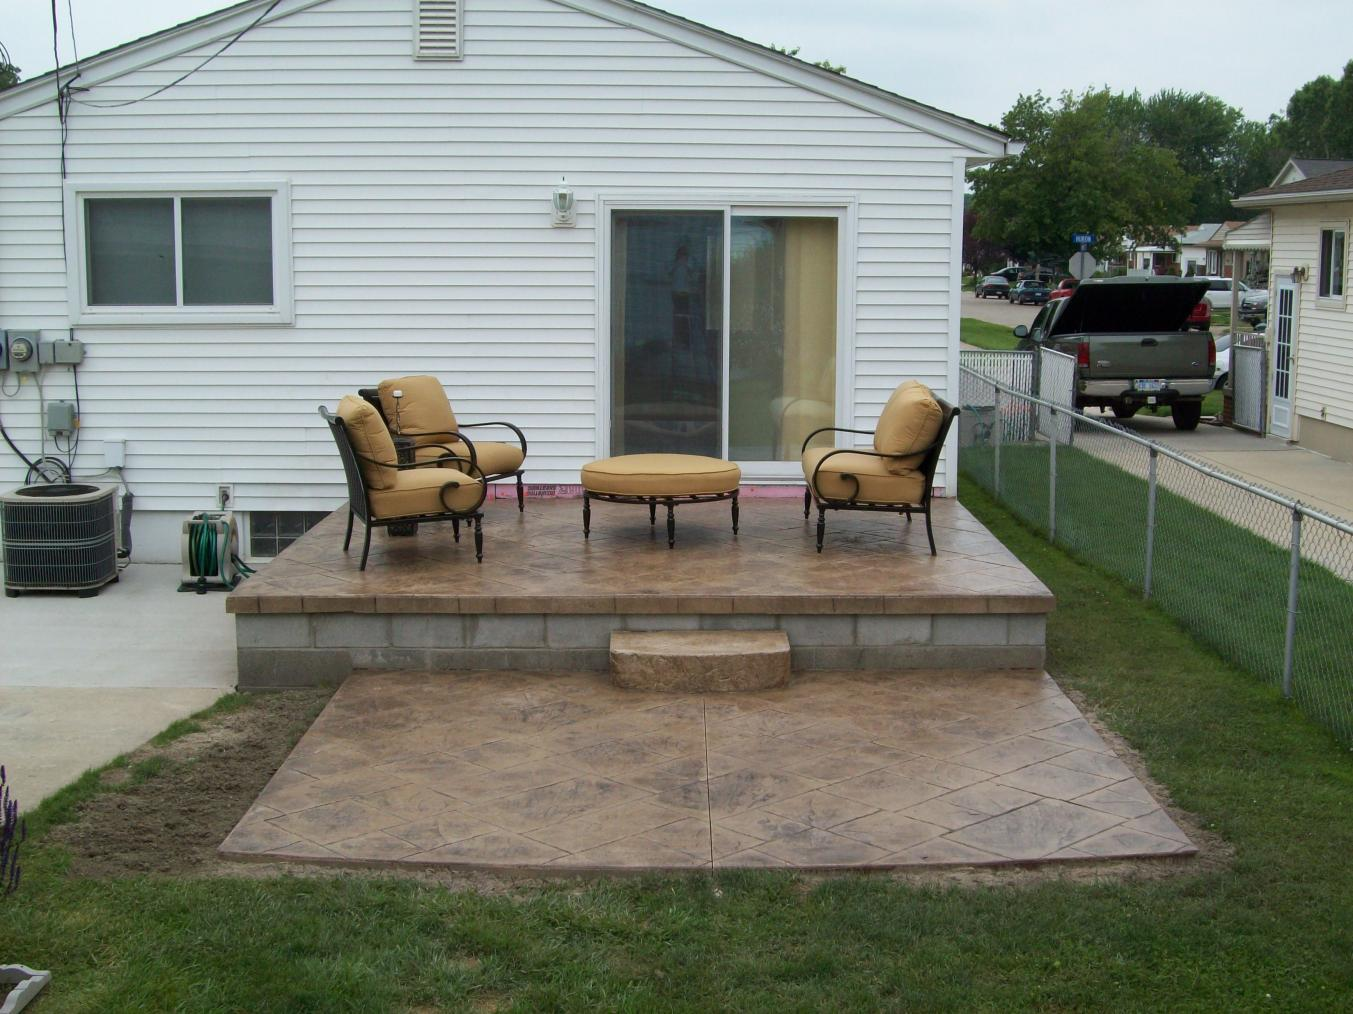 Building Detached Pergola On Concrete, Need Advice ... on Raised Concrete Patio Ideas id=93592